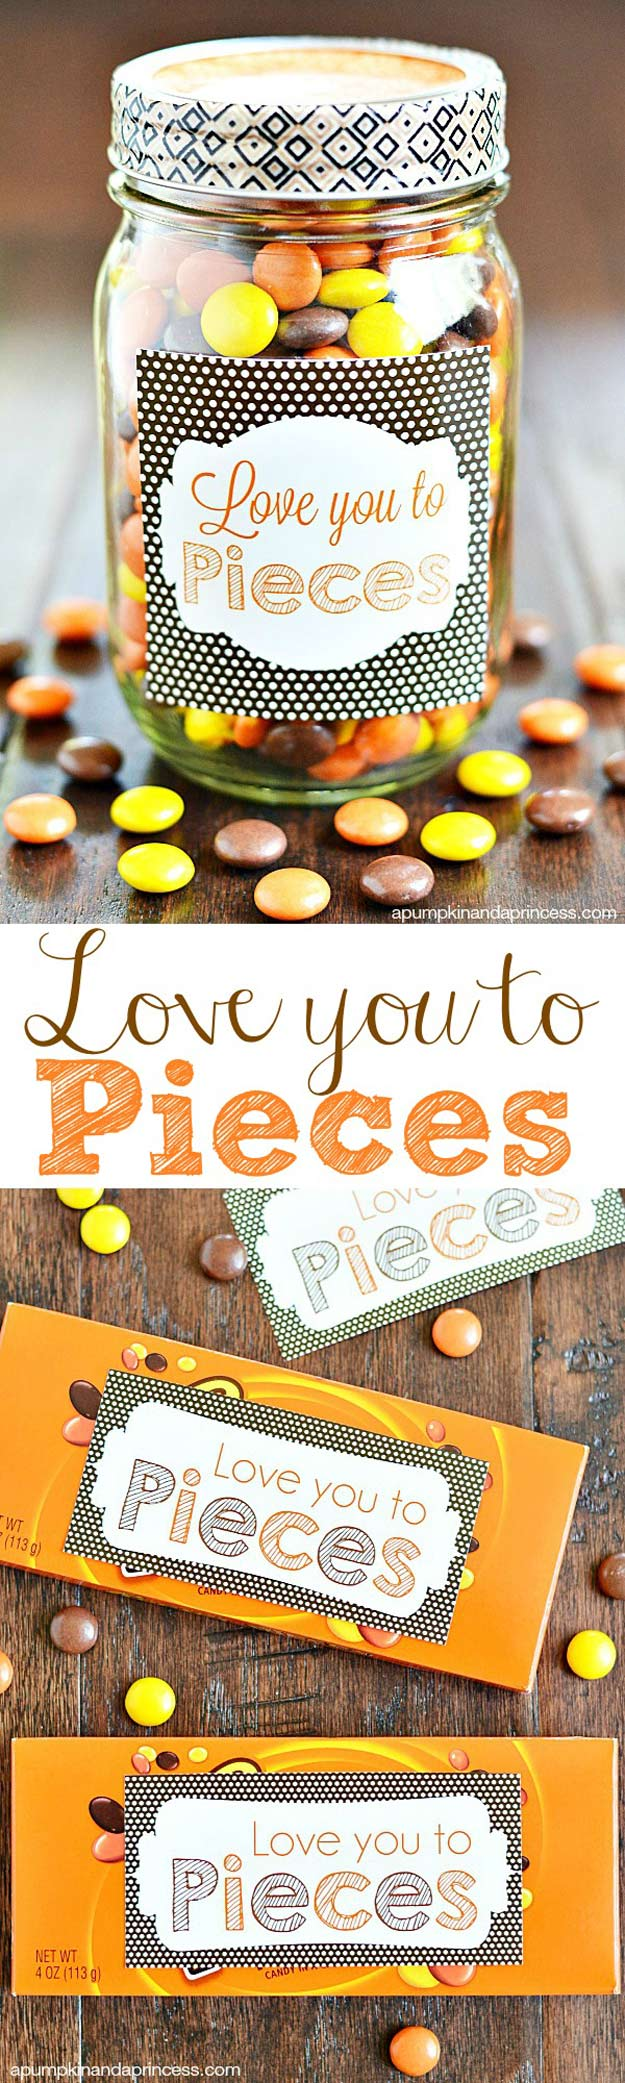 Mason Jar Valentine Gifts and Crafts | DIY Ideas for Valentines Day for Cute Gift Giving and Decor | Love you to Pieces Sweets Jar | #valentines